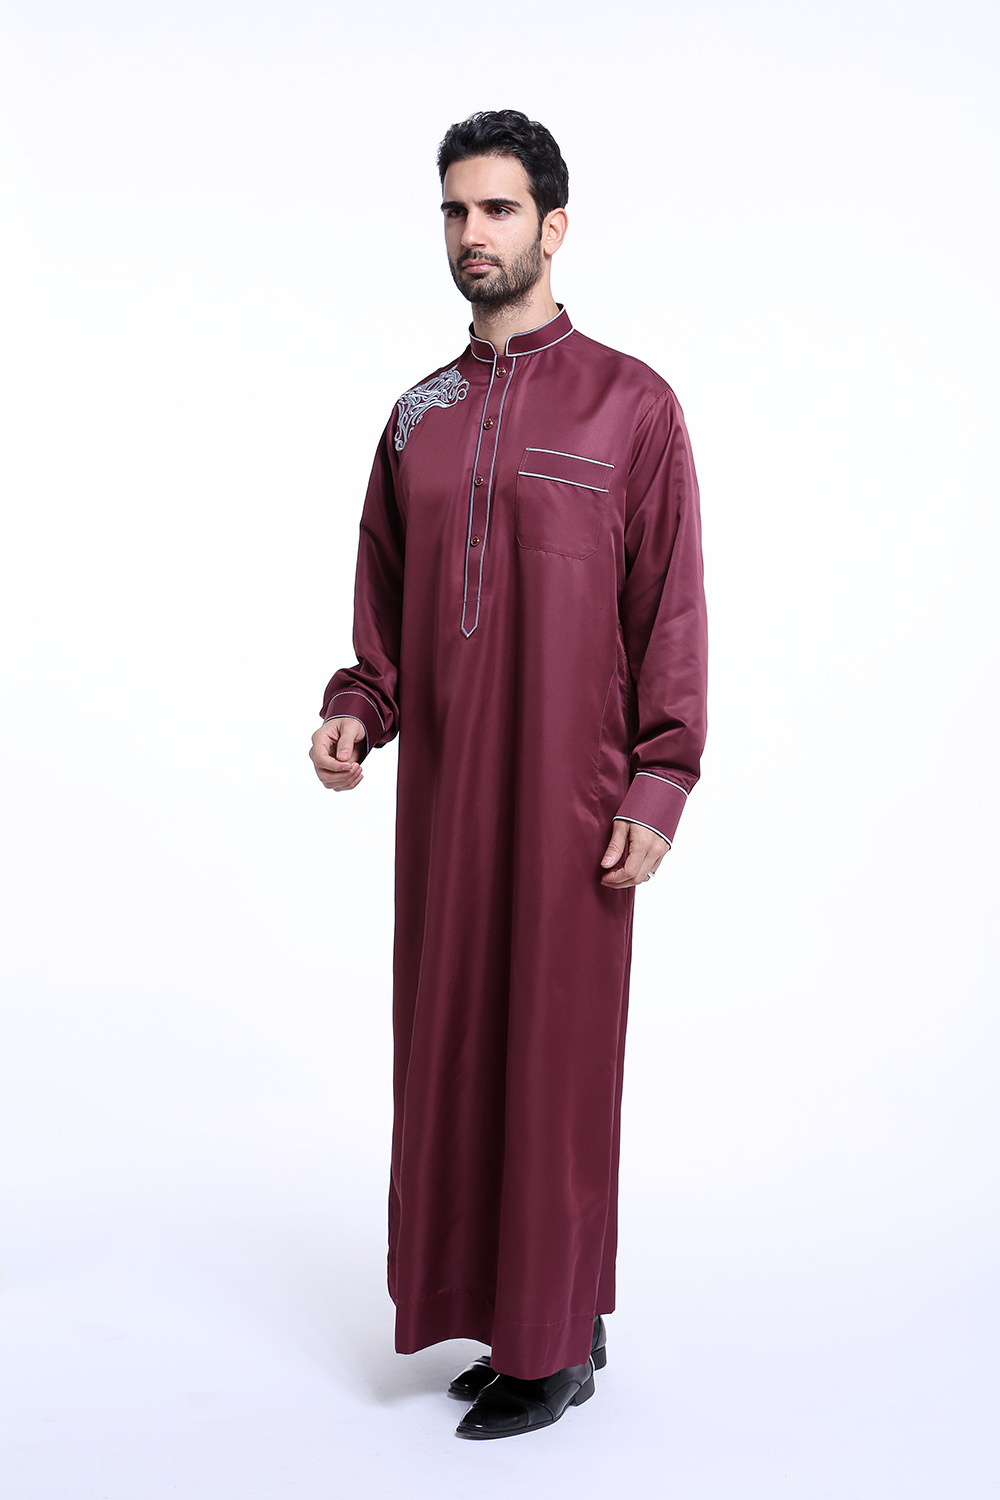 25457f6c844 DJGRSTER Arabic Robe Men Cotton Linen Long Robes Chinese Style Clothing  White Arab Clothing Loose Casual Male Islamic Clothing. 333. 2 1 3 4 5 6 ...